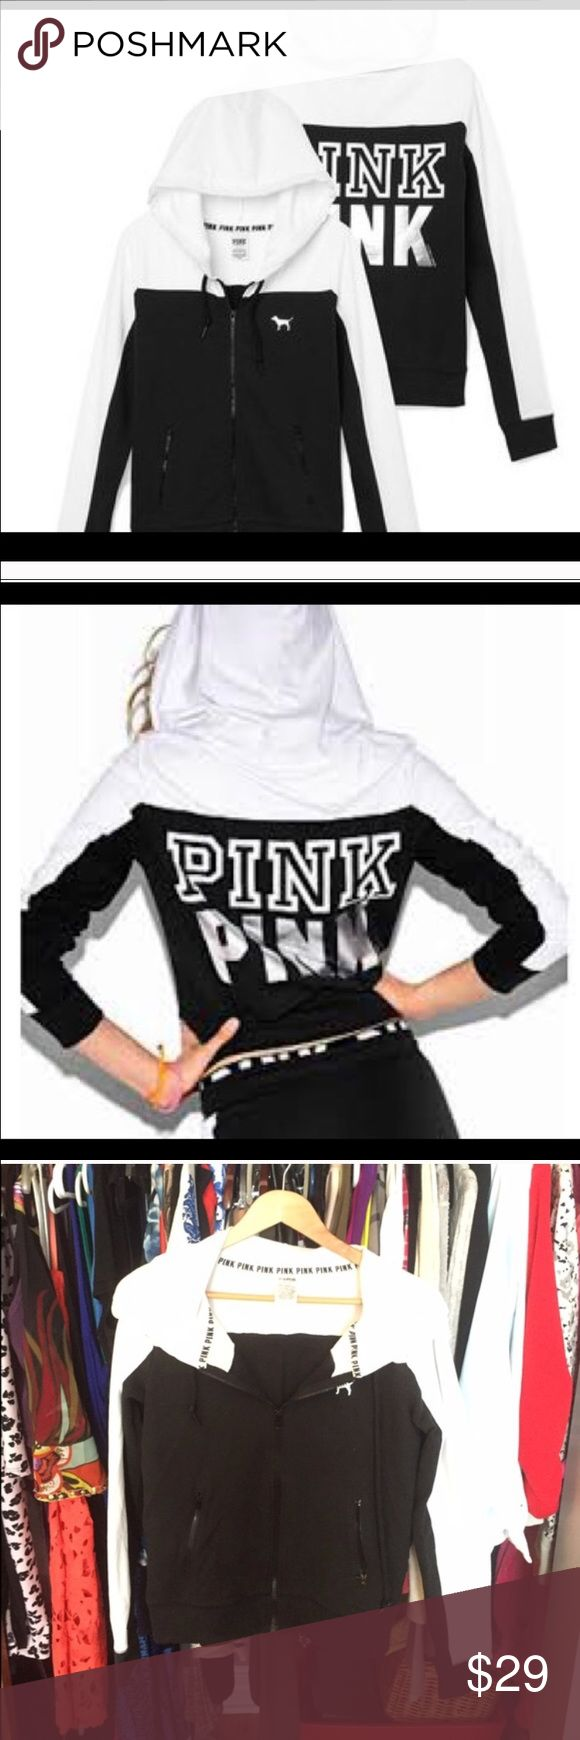 Full Zip Black and White Hoodie PINK VS Full zip hoodie in excellent condition. Thinner fabric, with a small amount of fleece inside the hood. PINK Victoria's Secret Tops Sweatshirts & Hoodies